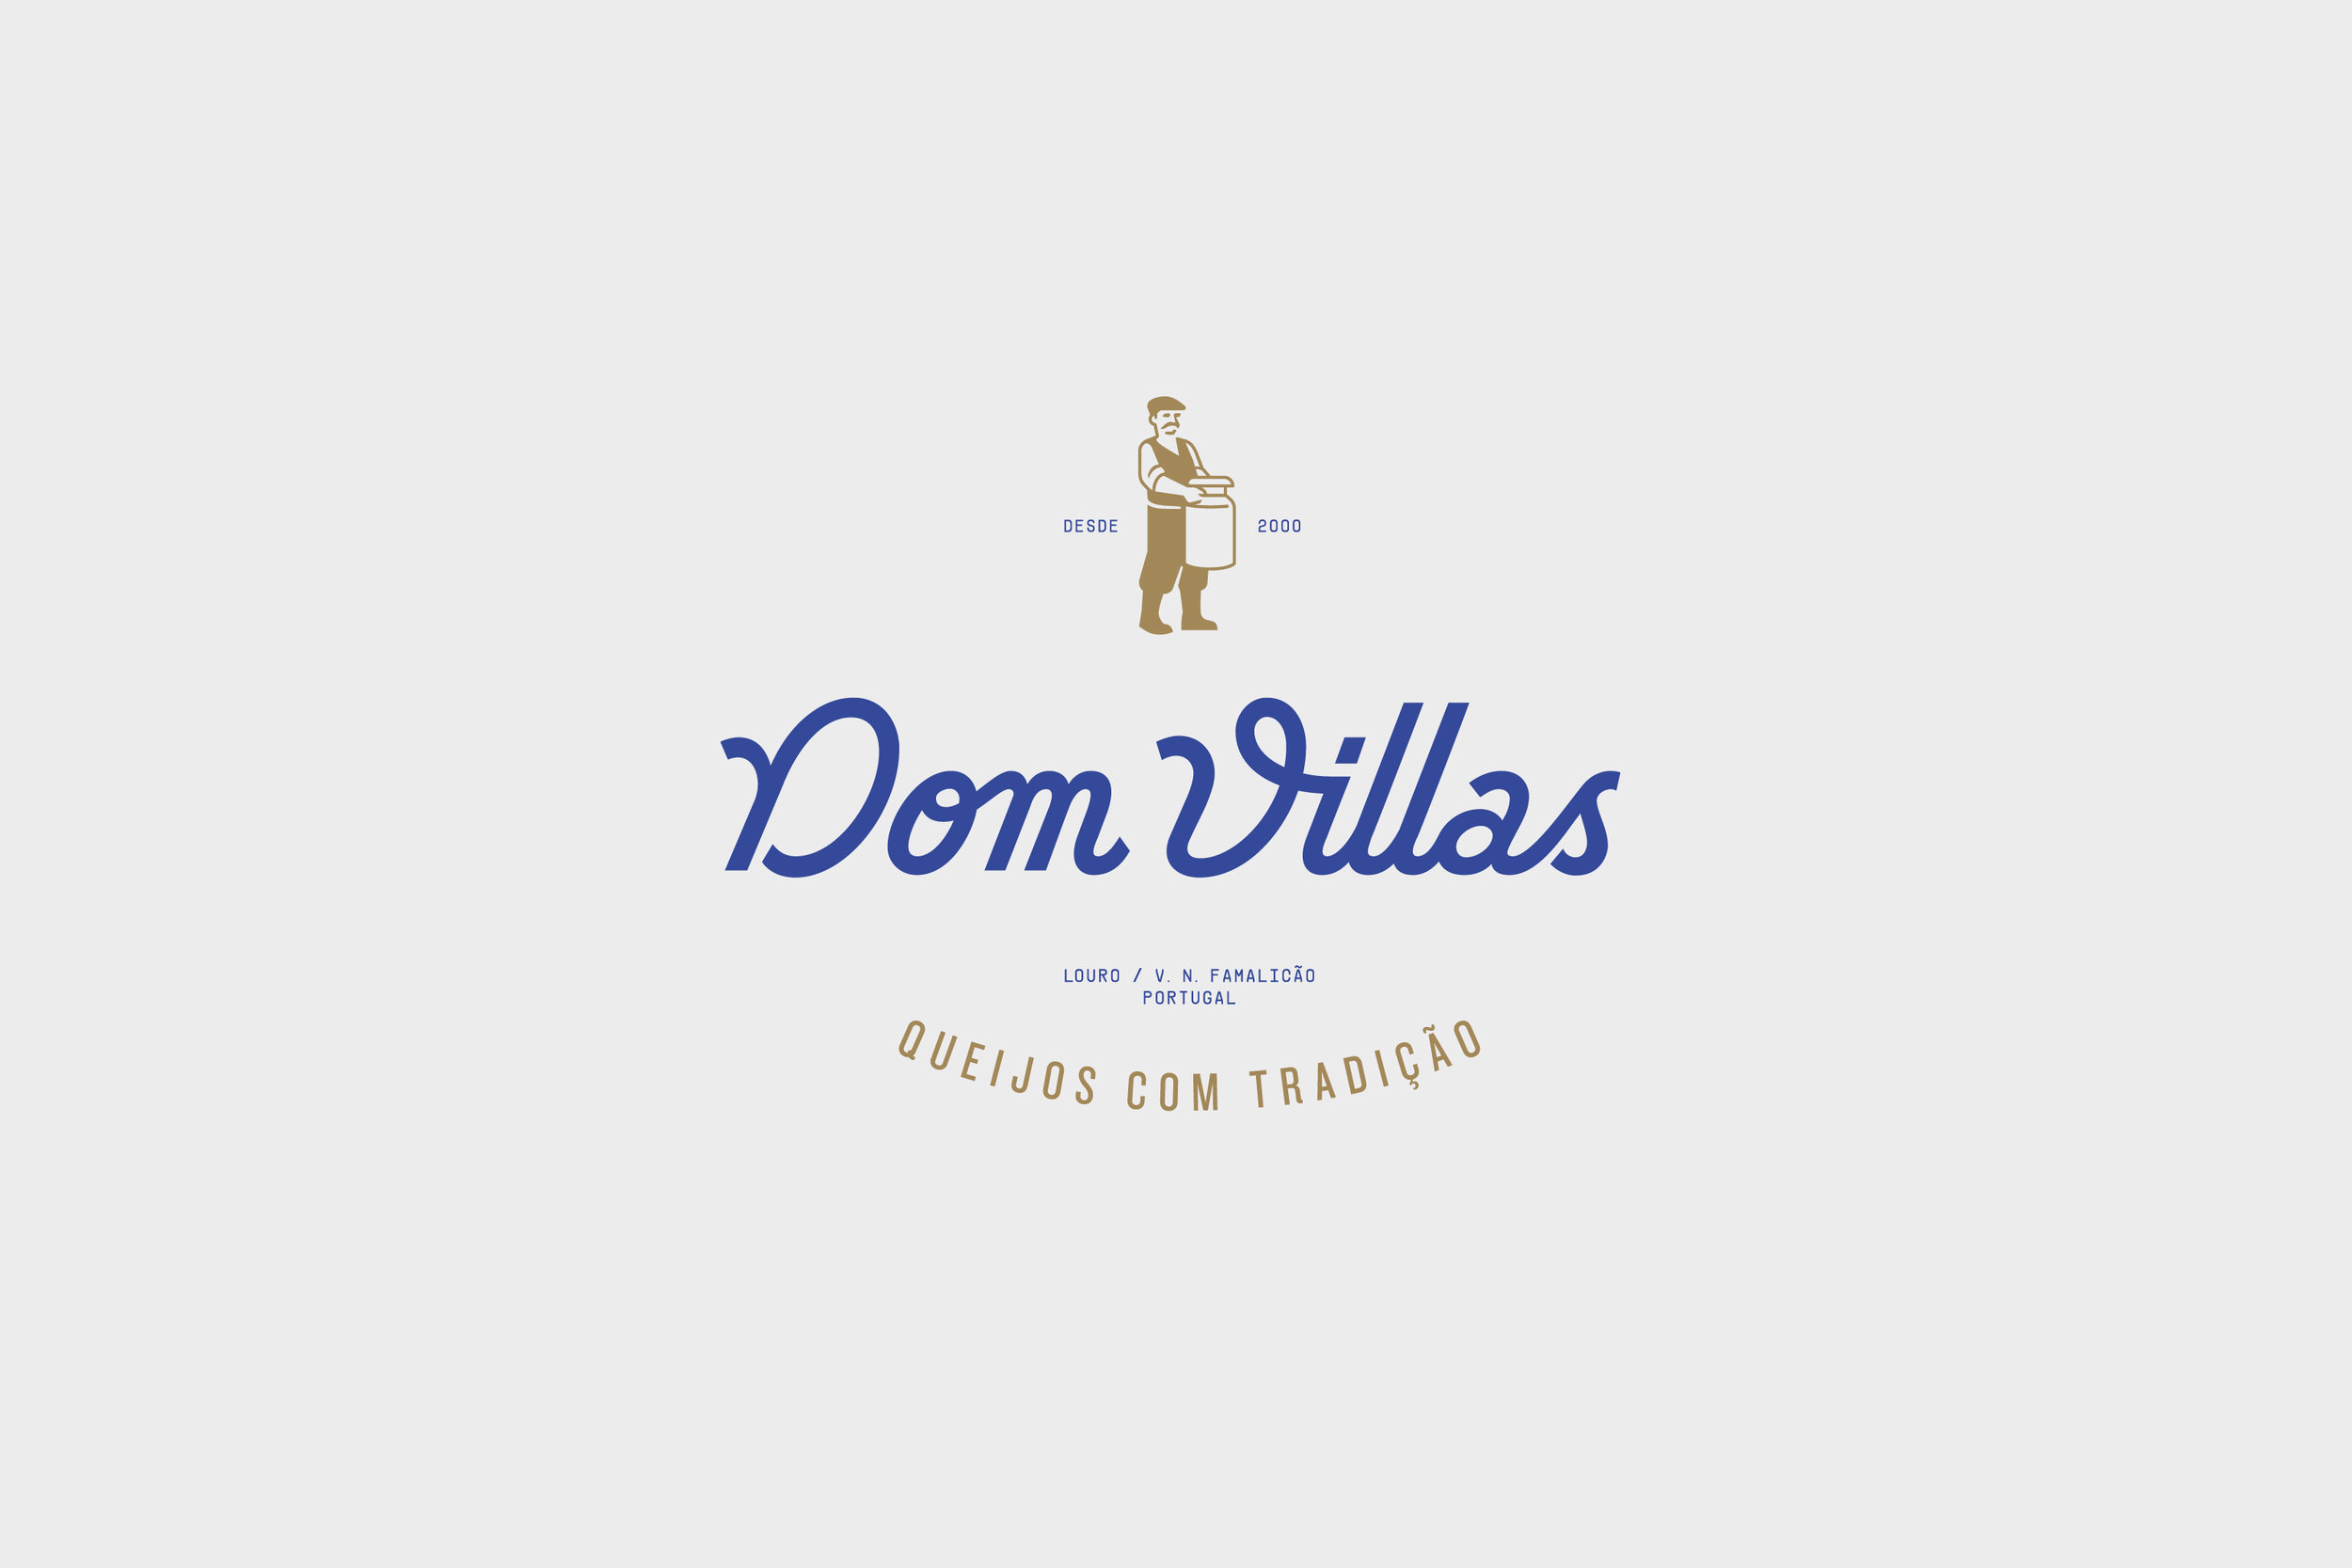 Cheeses+Dom+Villas+identity+and+packaging+by+www.gen-7.jpg